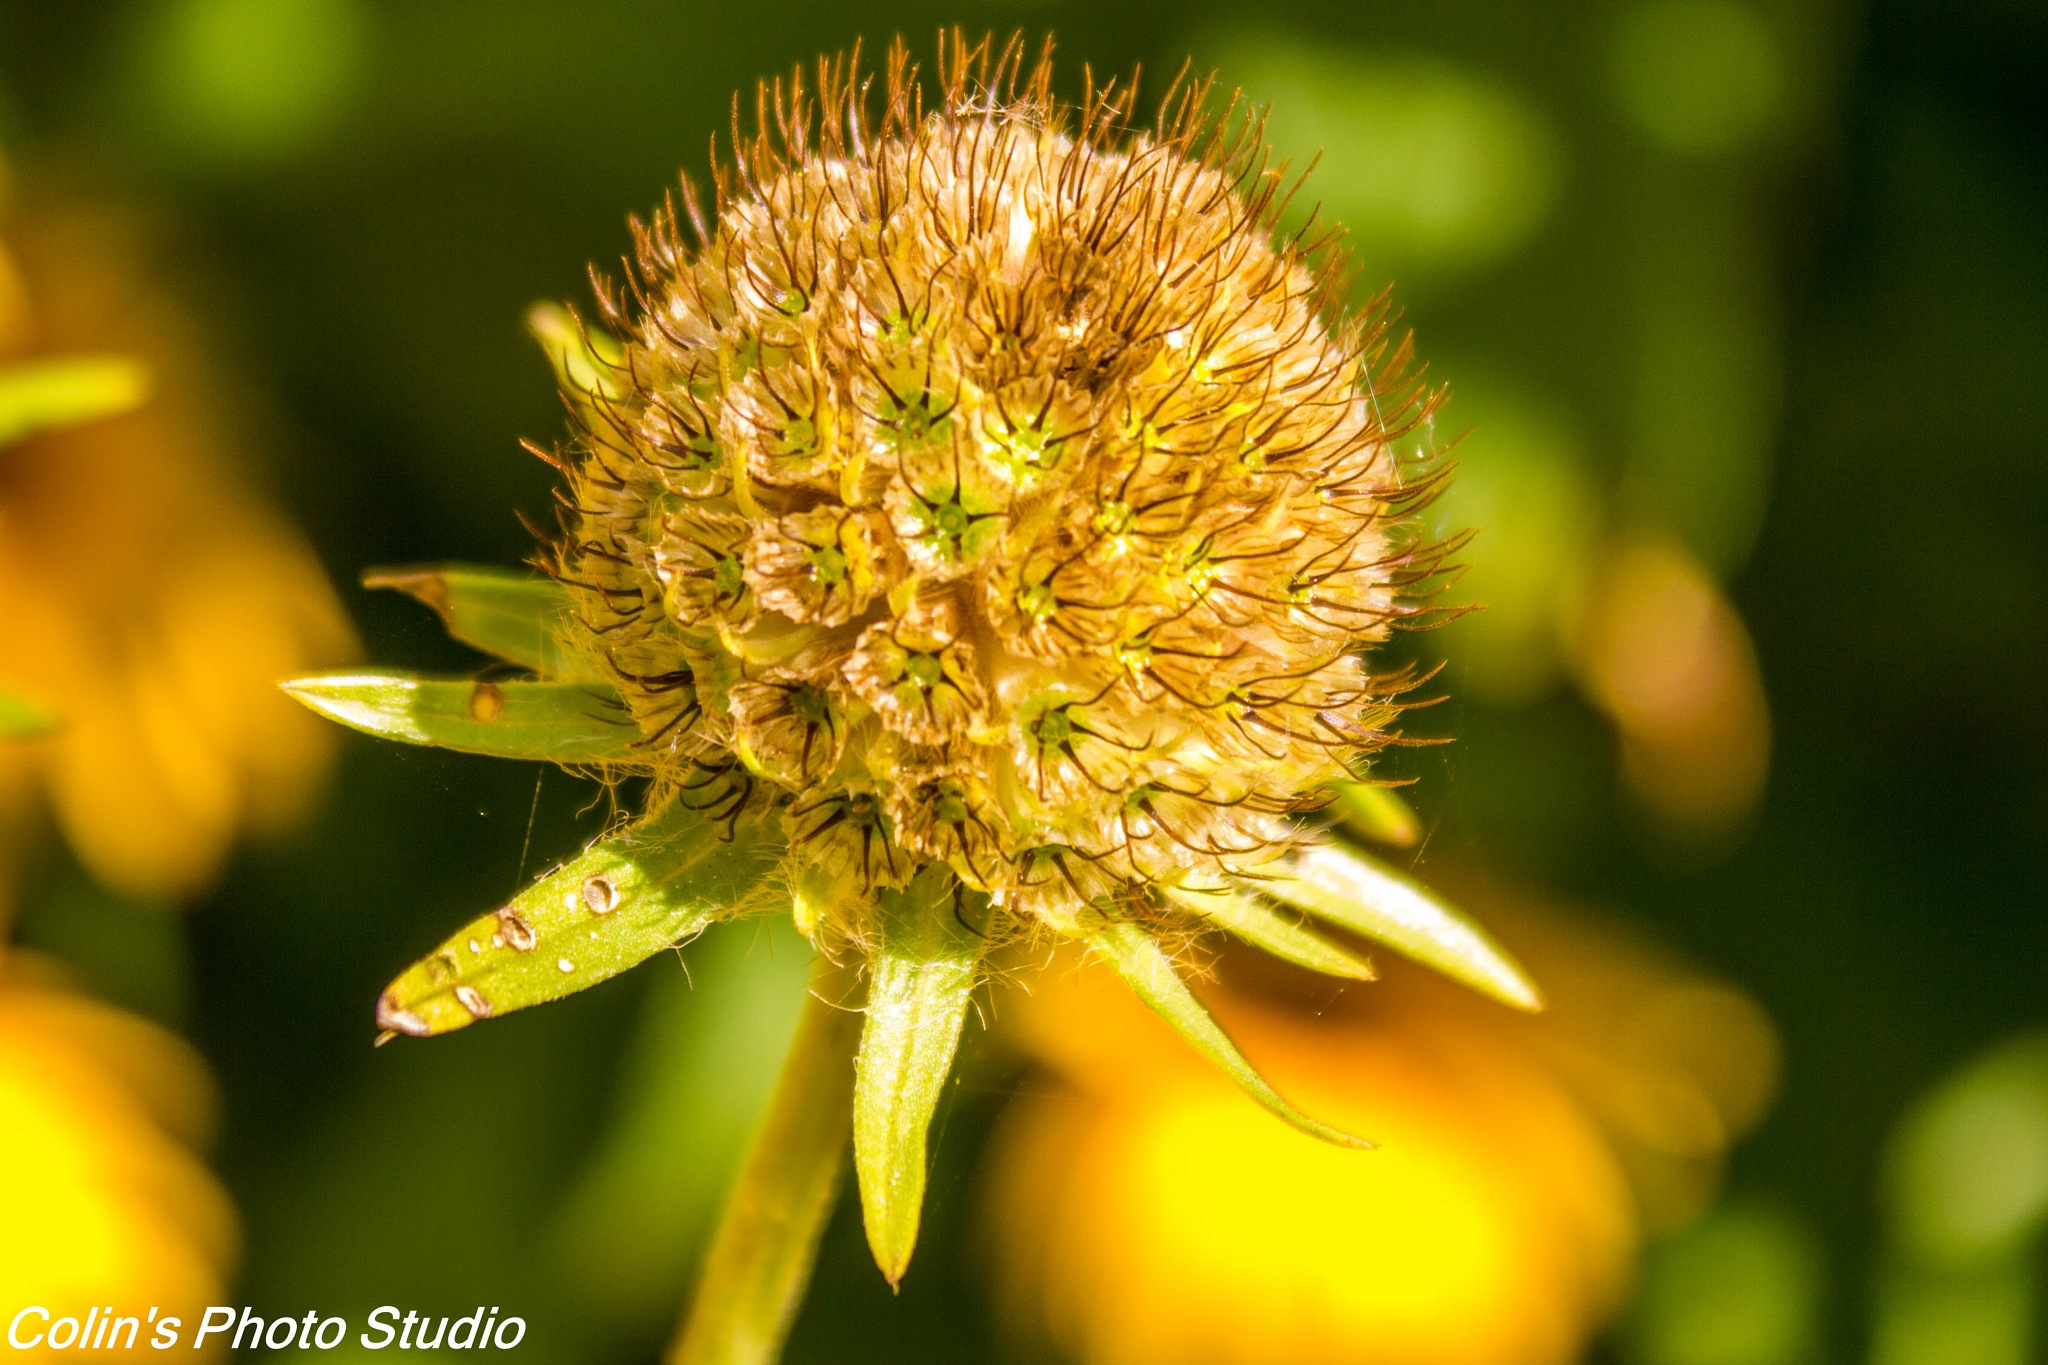 Seeded pod by Colin